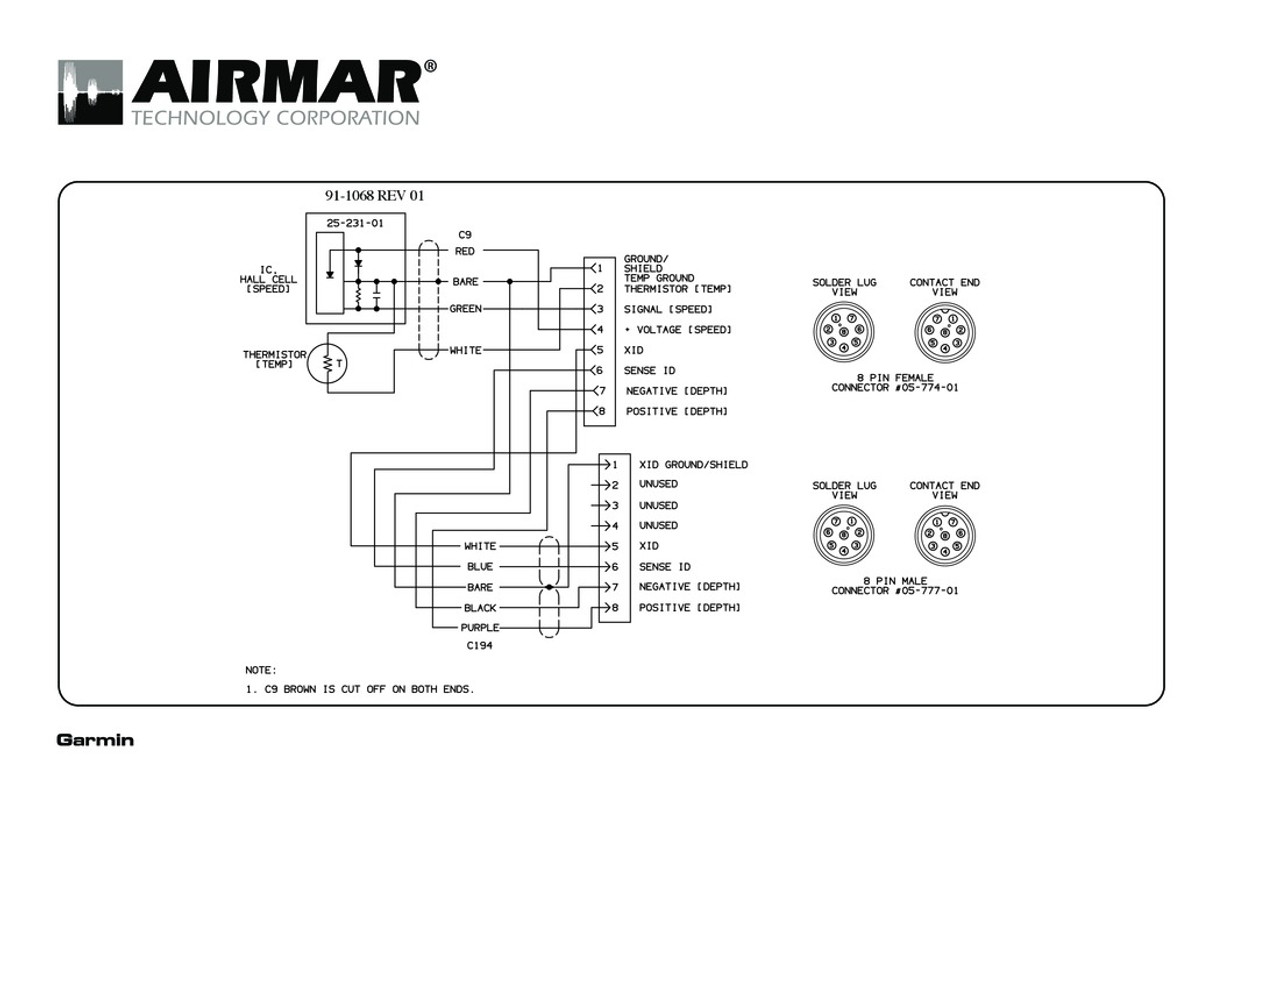 Garmin 250 Wiring Diagram - Simple Wiring Diagram Site on garmin 530 dimensions, interior wiring diagram, yamaha rhino wiring diagram, garmin 530 operation,